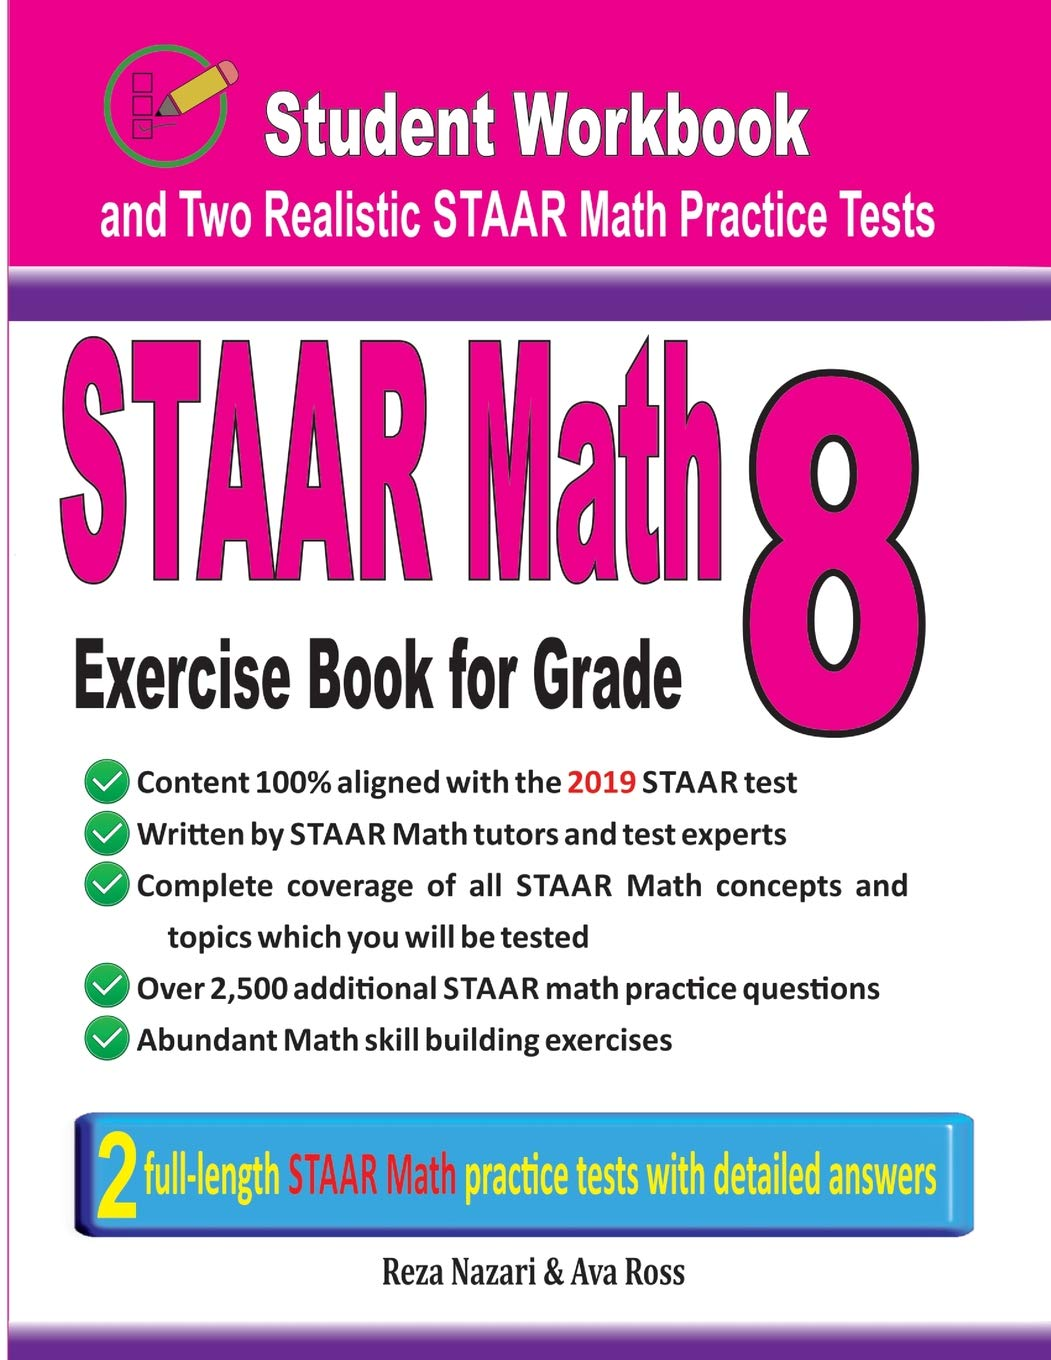 Buy Staar Math Exercise Book for Grade 8: Student Workbook